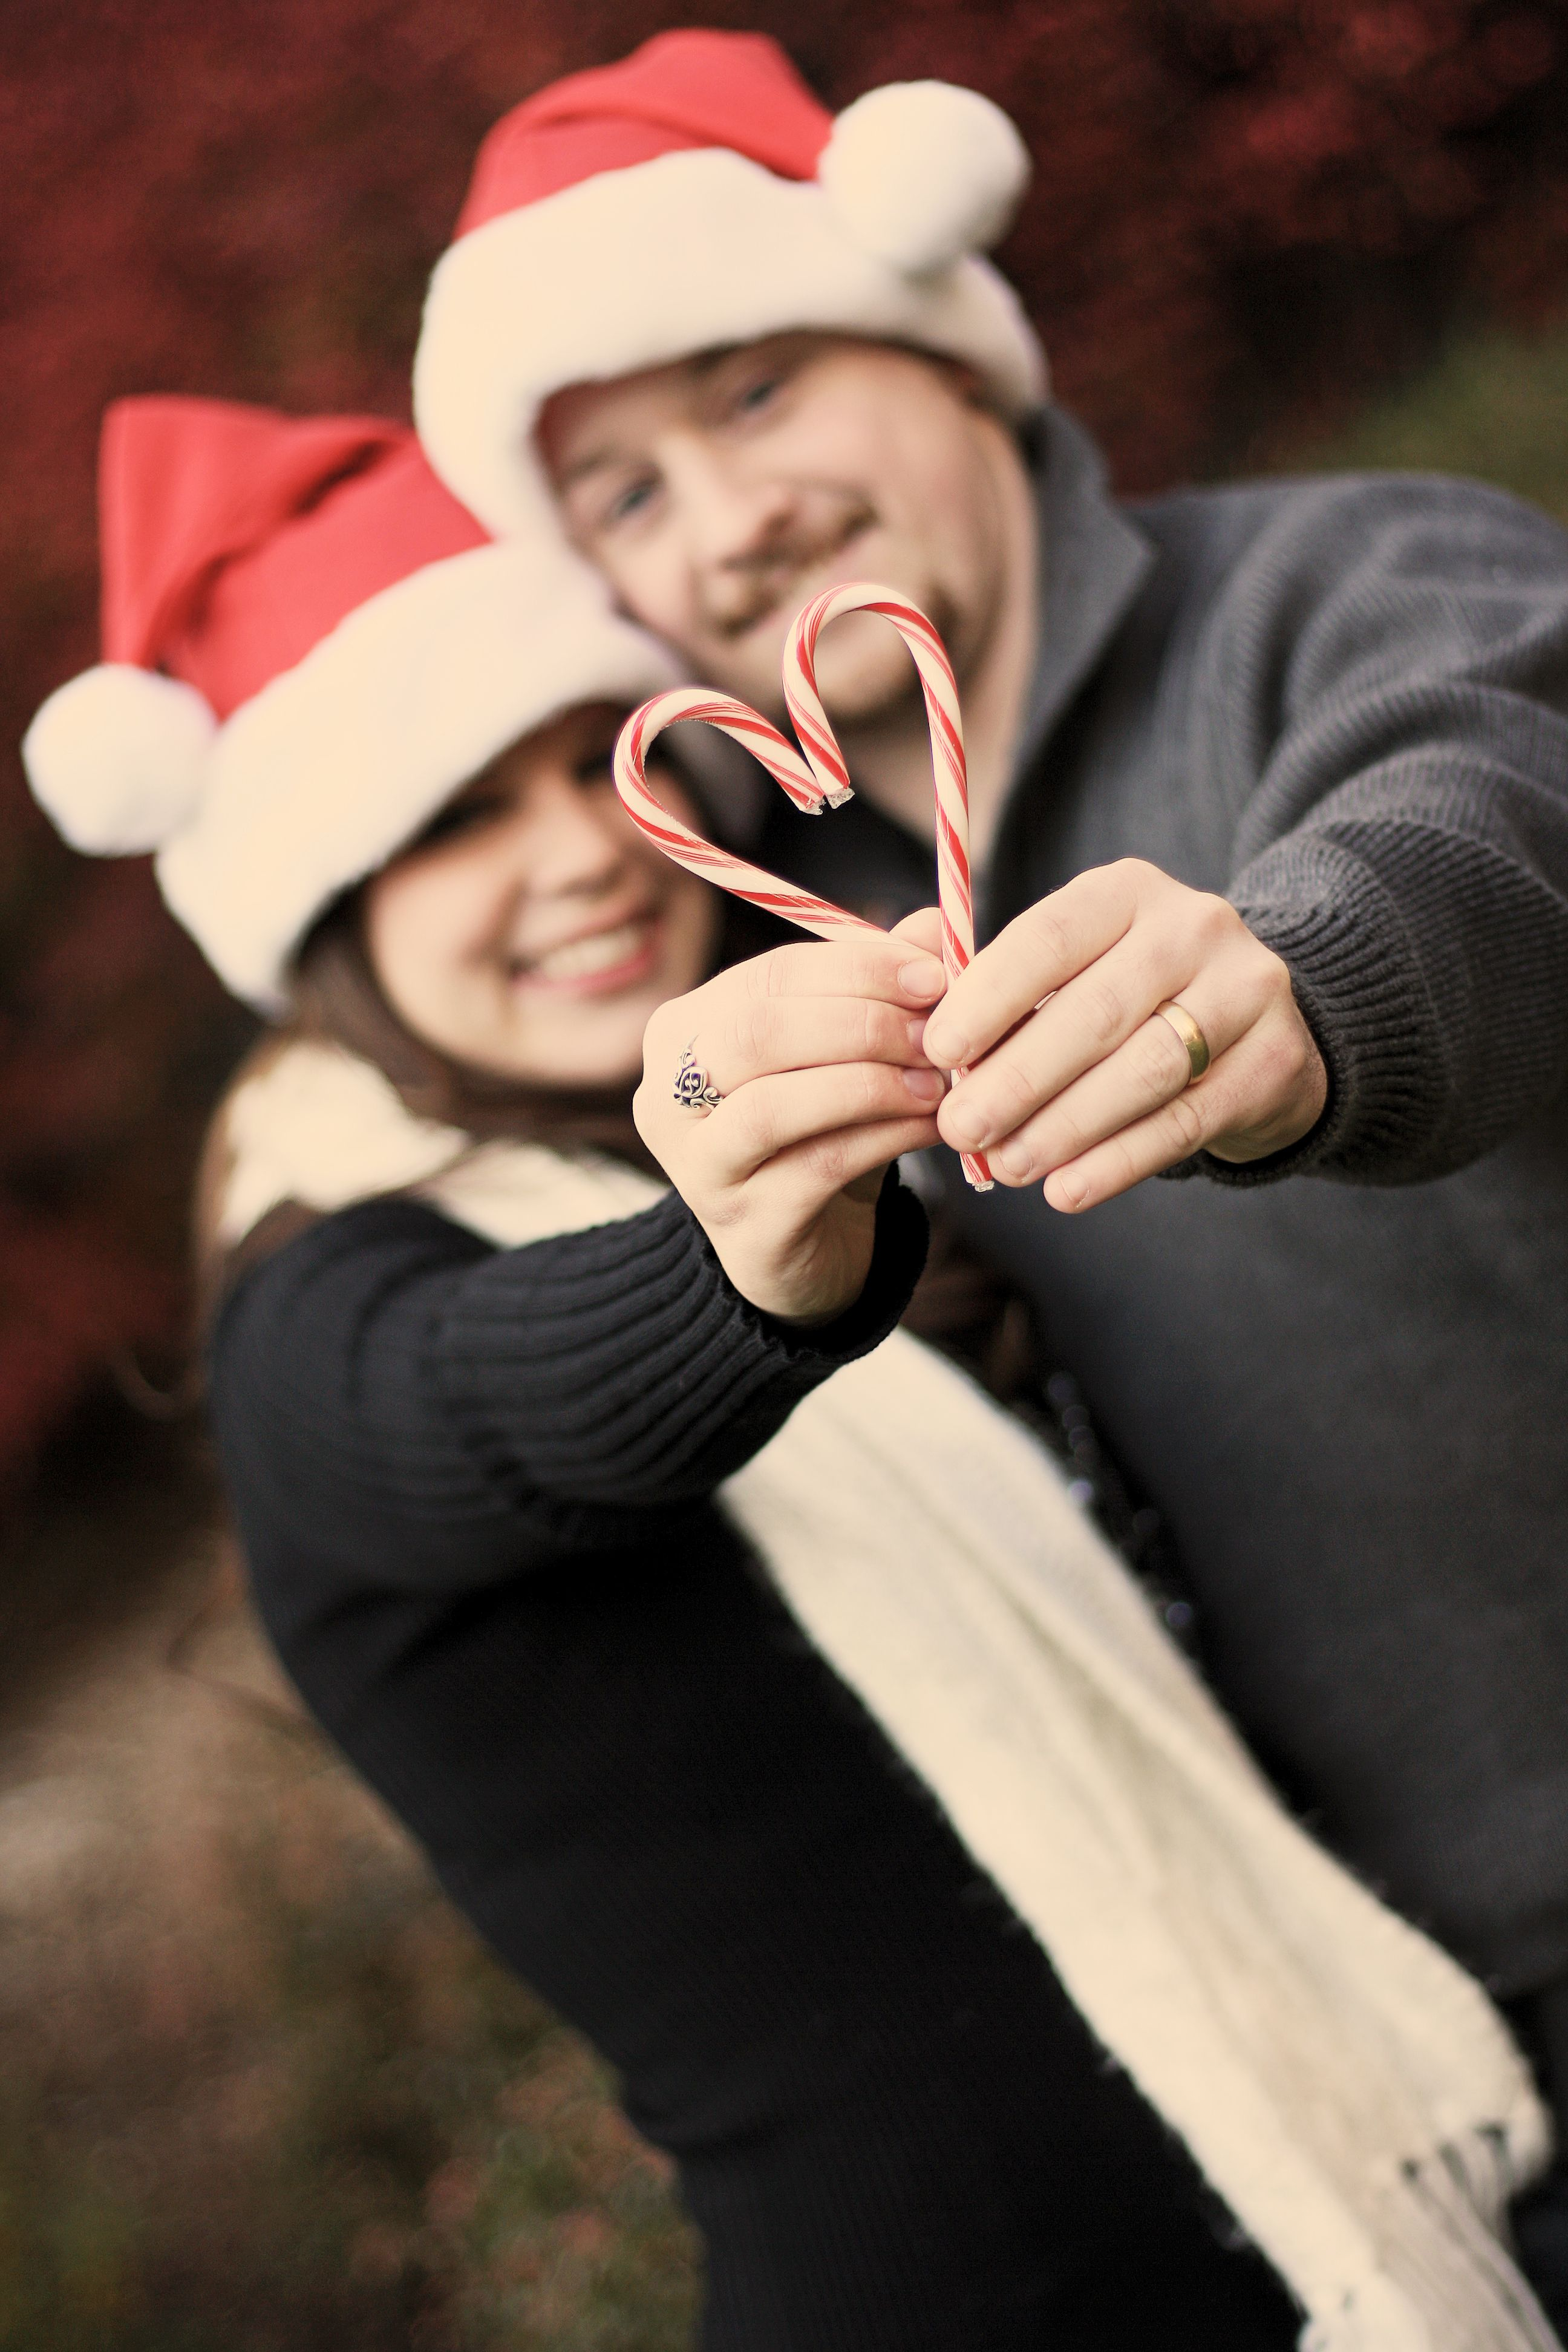 couple christmas photo idea this is the photo my beloved and i will for this holiday season